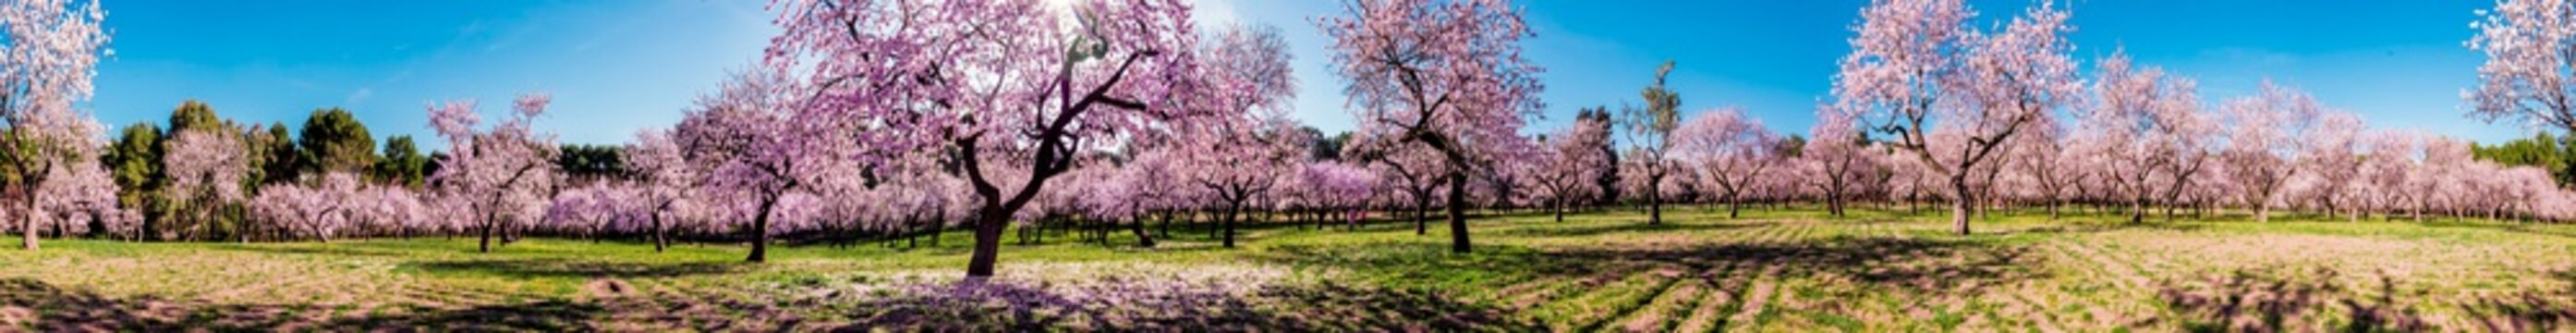 Pink alleys of blooming with flowers almond trees in a park in Madrid, Spain spring